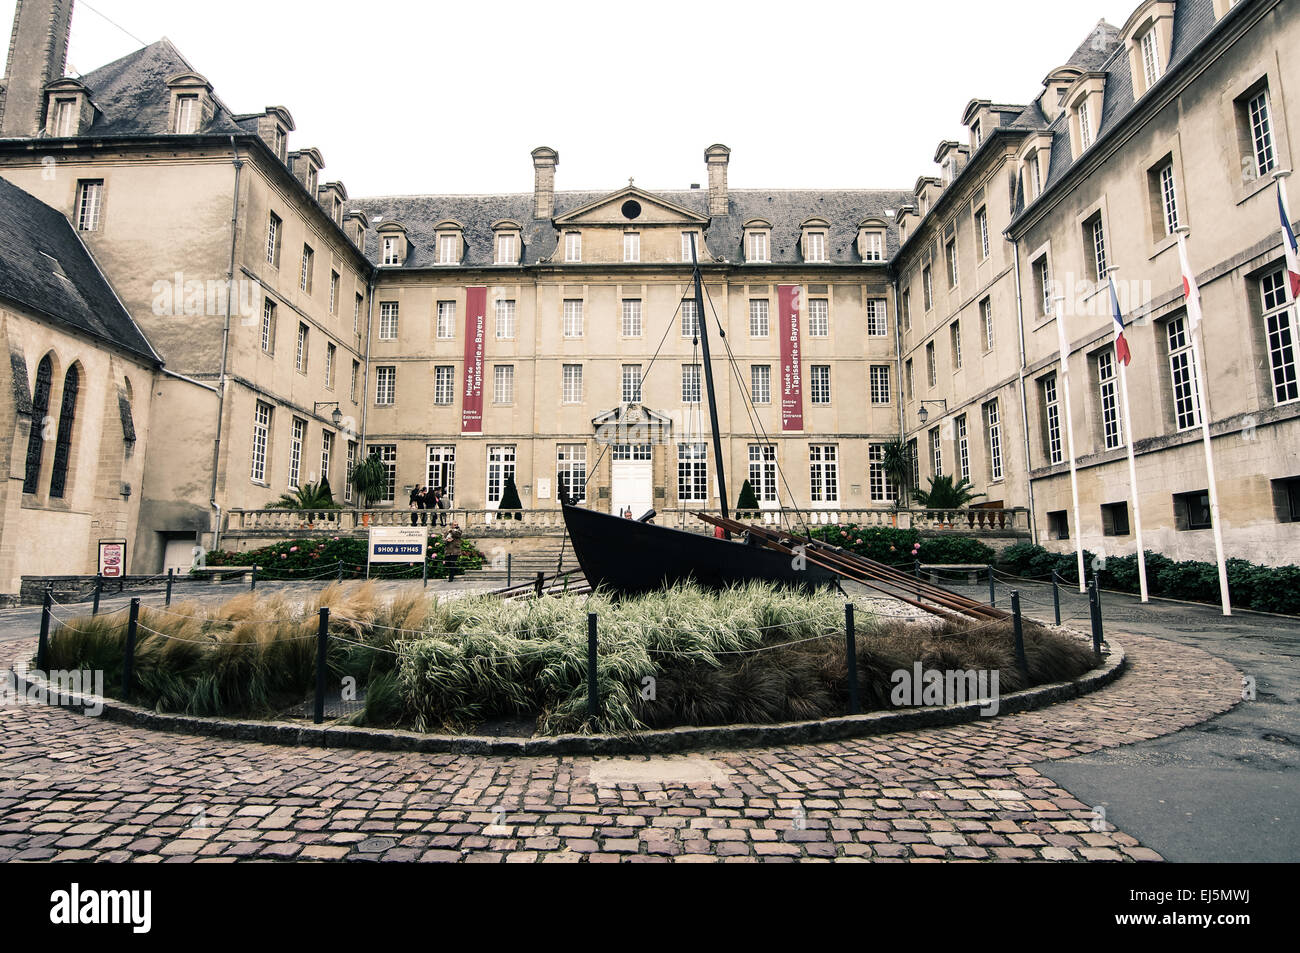 The famous Bayeux Tapestry, actually a rather large piece of embroidered artwork, is housed in this museum in Bayeux, - Stock Image